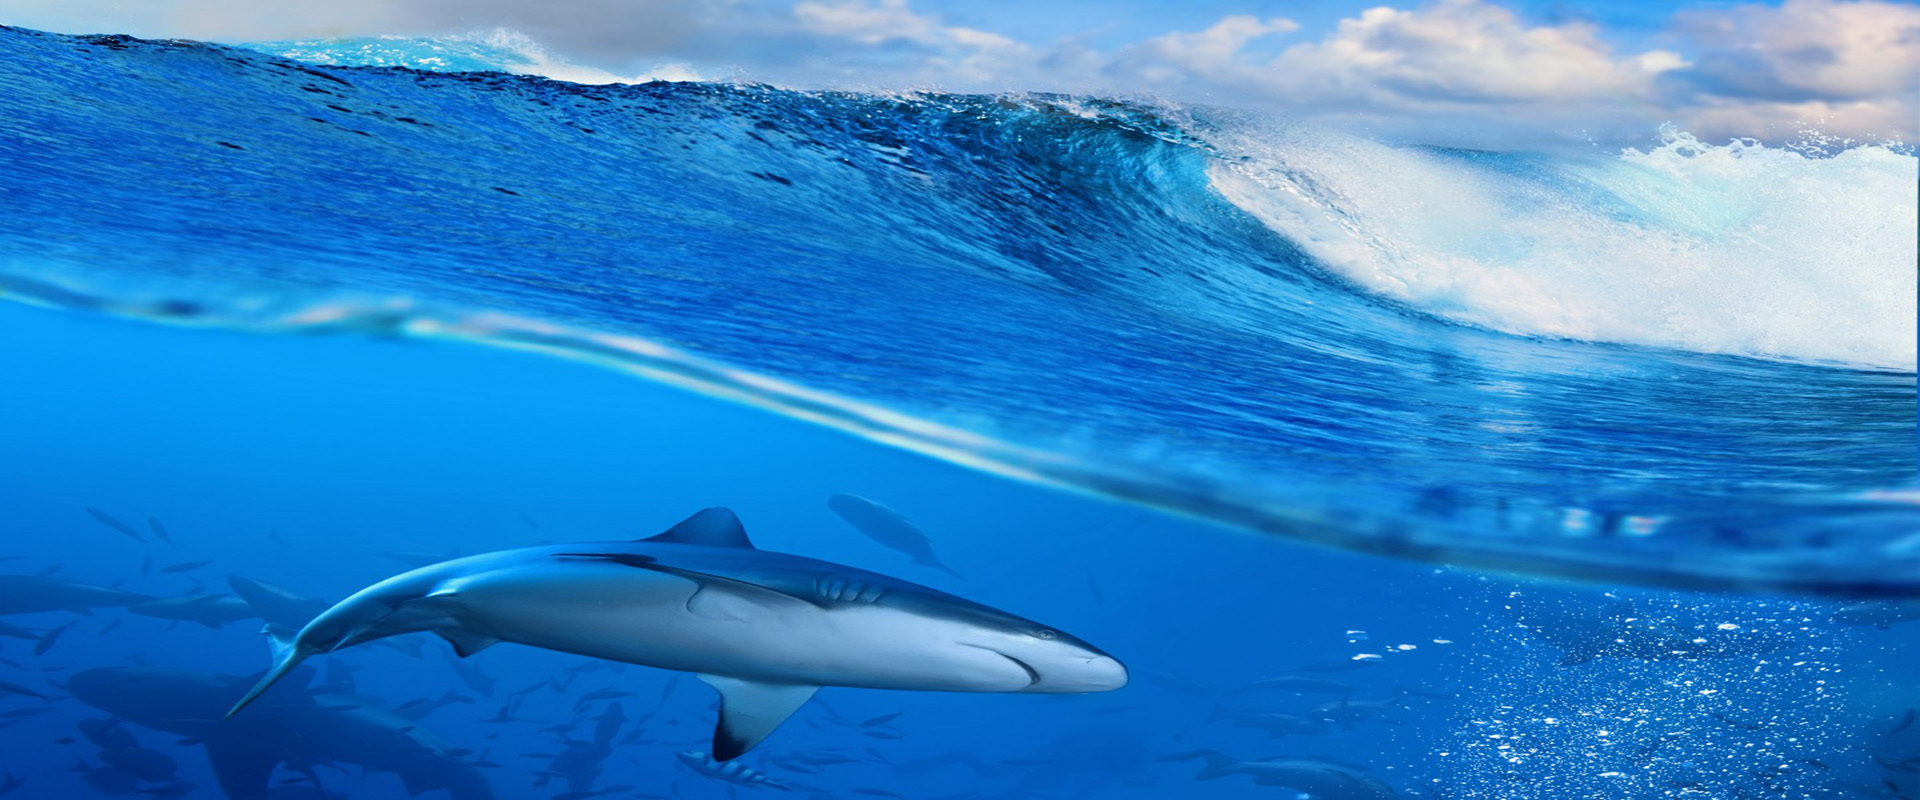 ocean whale background  ocean  whale  wave background image for free download